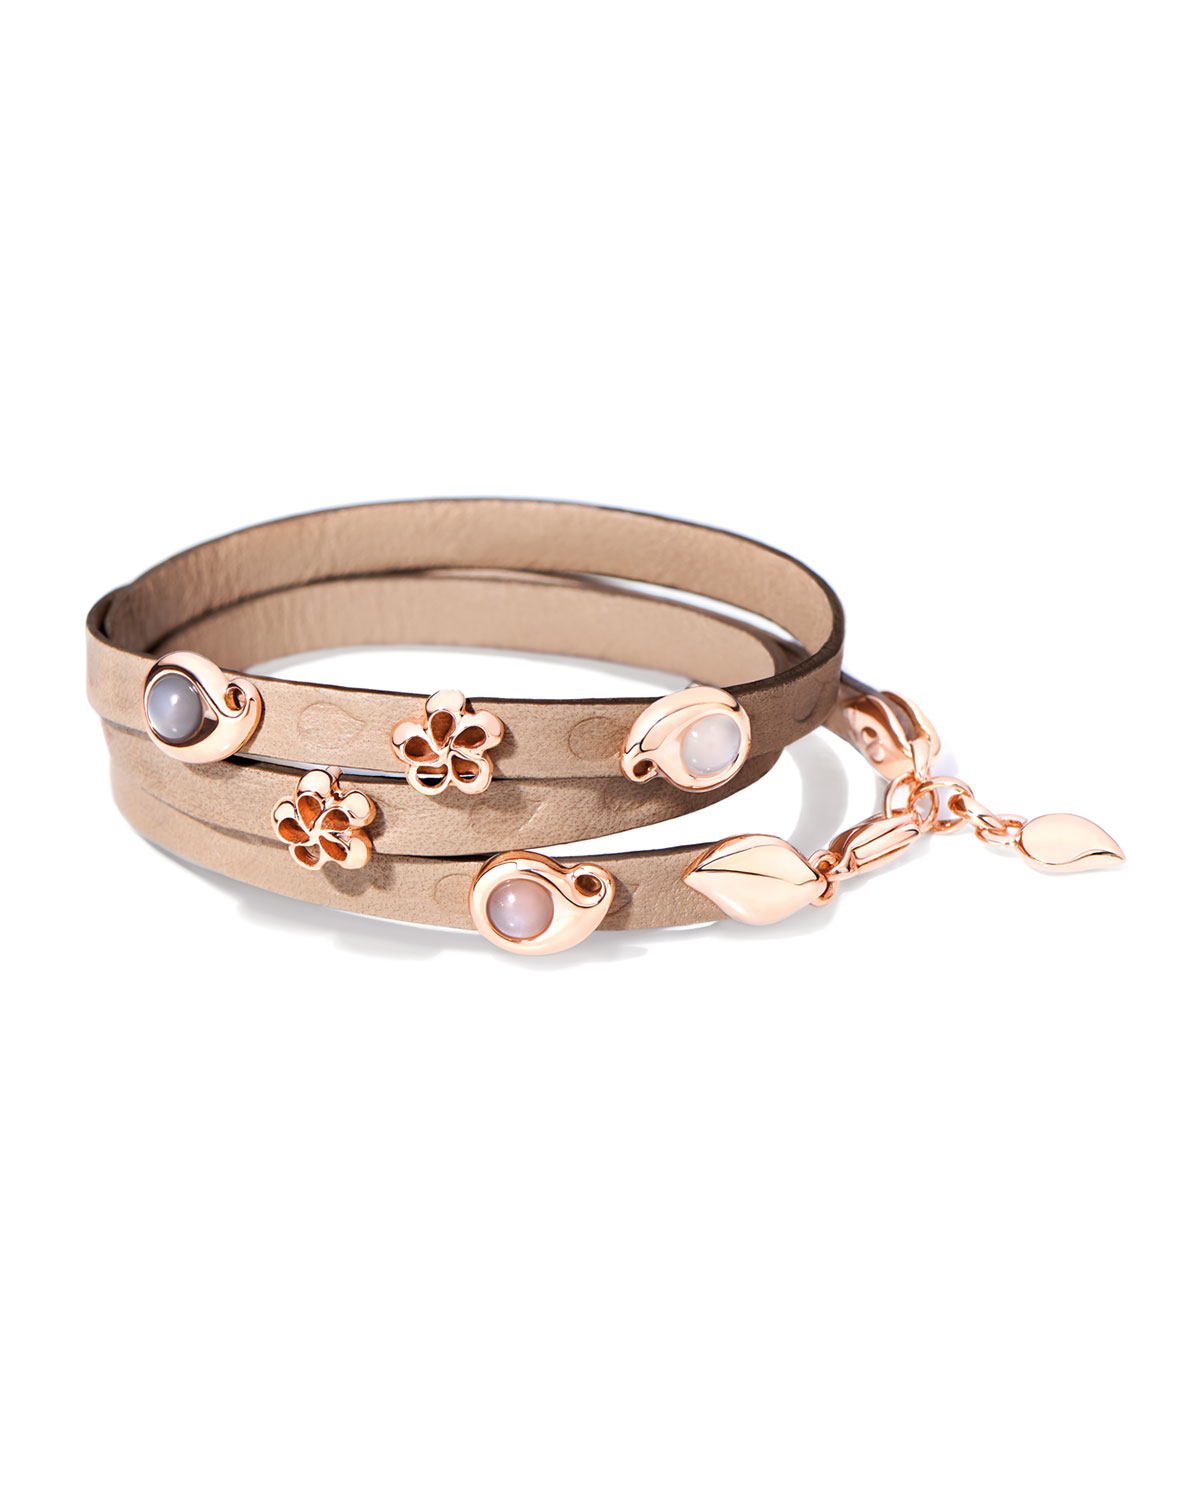 TAMARA COMOLLI Loopy Mixed Cabochon Leather Wrap Bracelet With Rose Gold